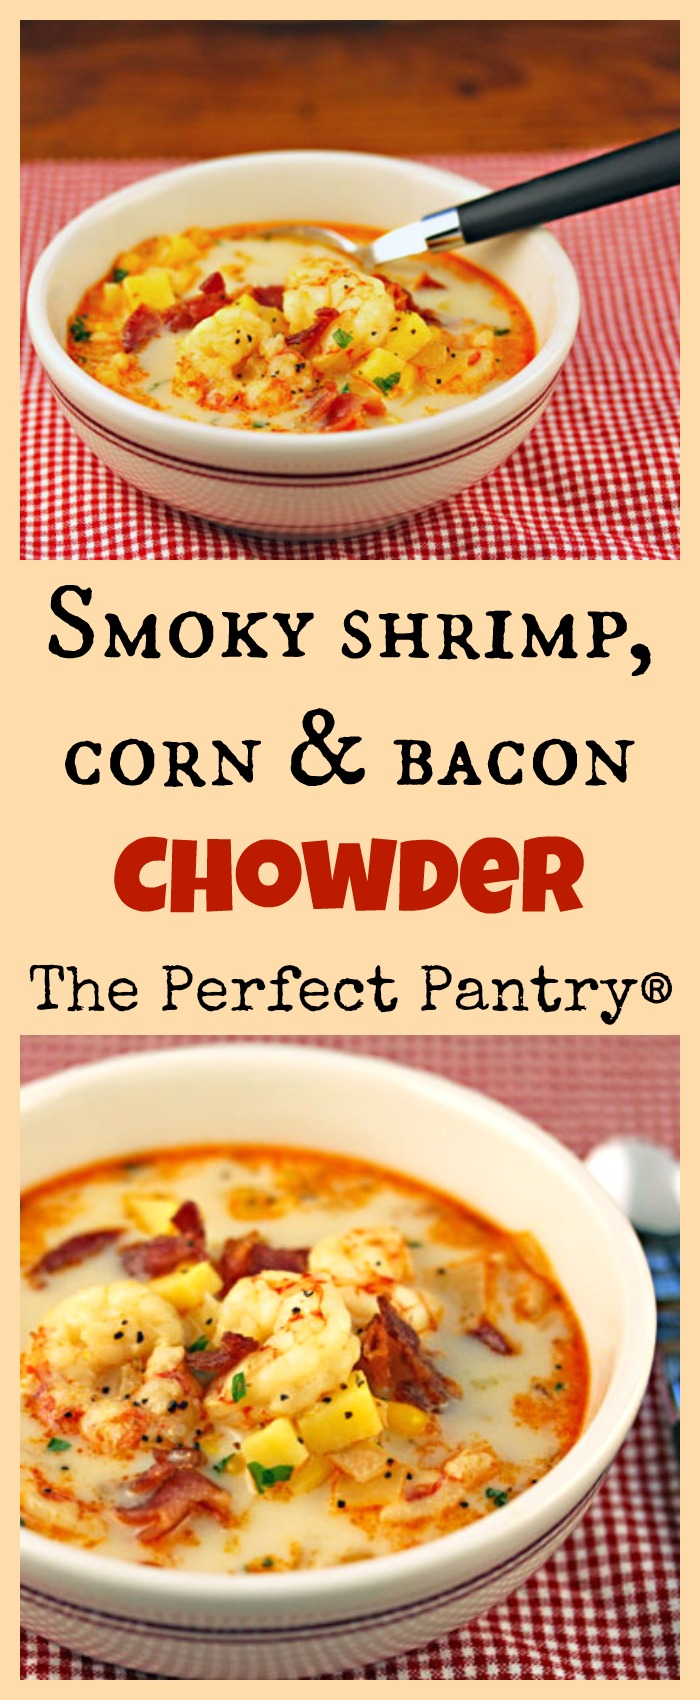 Smoky shrimp, corn and bacon chowder, a year-round favorite.